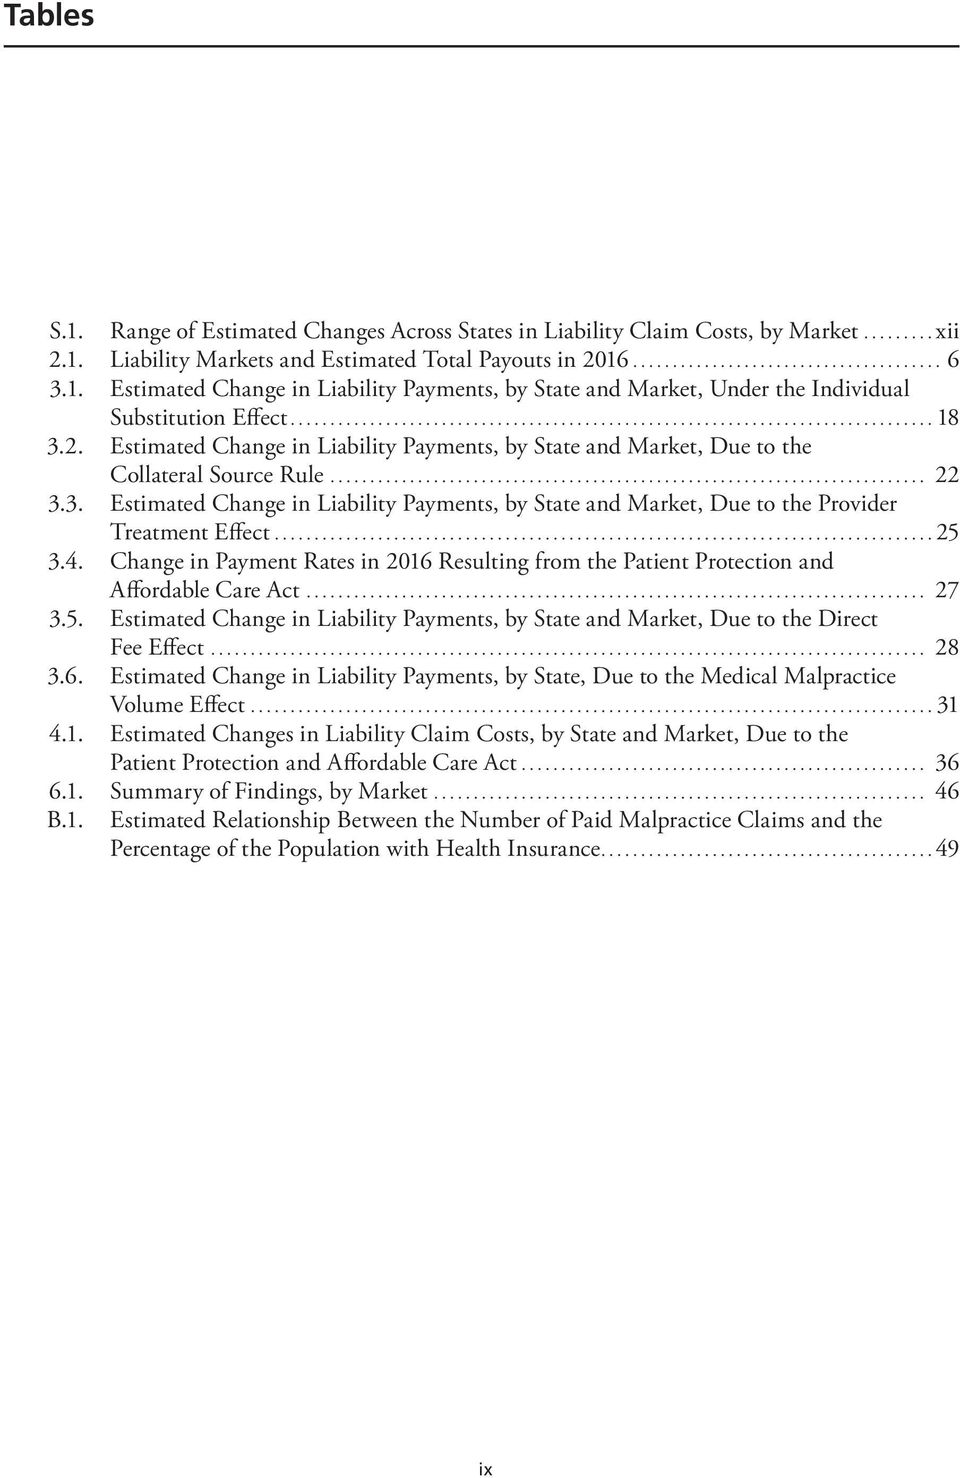 ..25 3.4. Change in Payment Rates in 2016 Resulting from the Patient Protection and Affordable Care Act... 27 3.5. Estimated Change in Liability Payments, by State and Market, Due to the Direct Fee Effect.